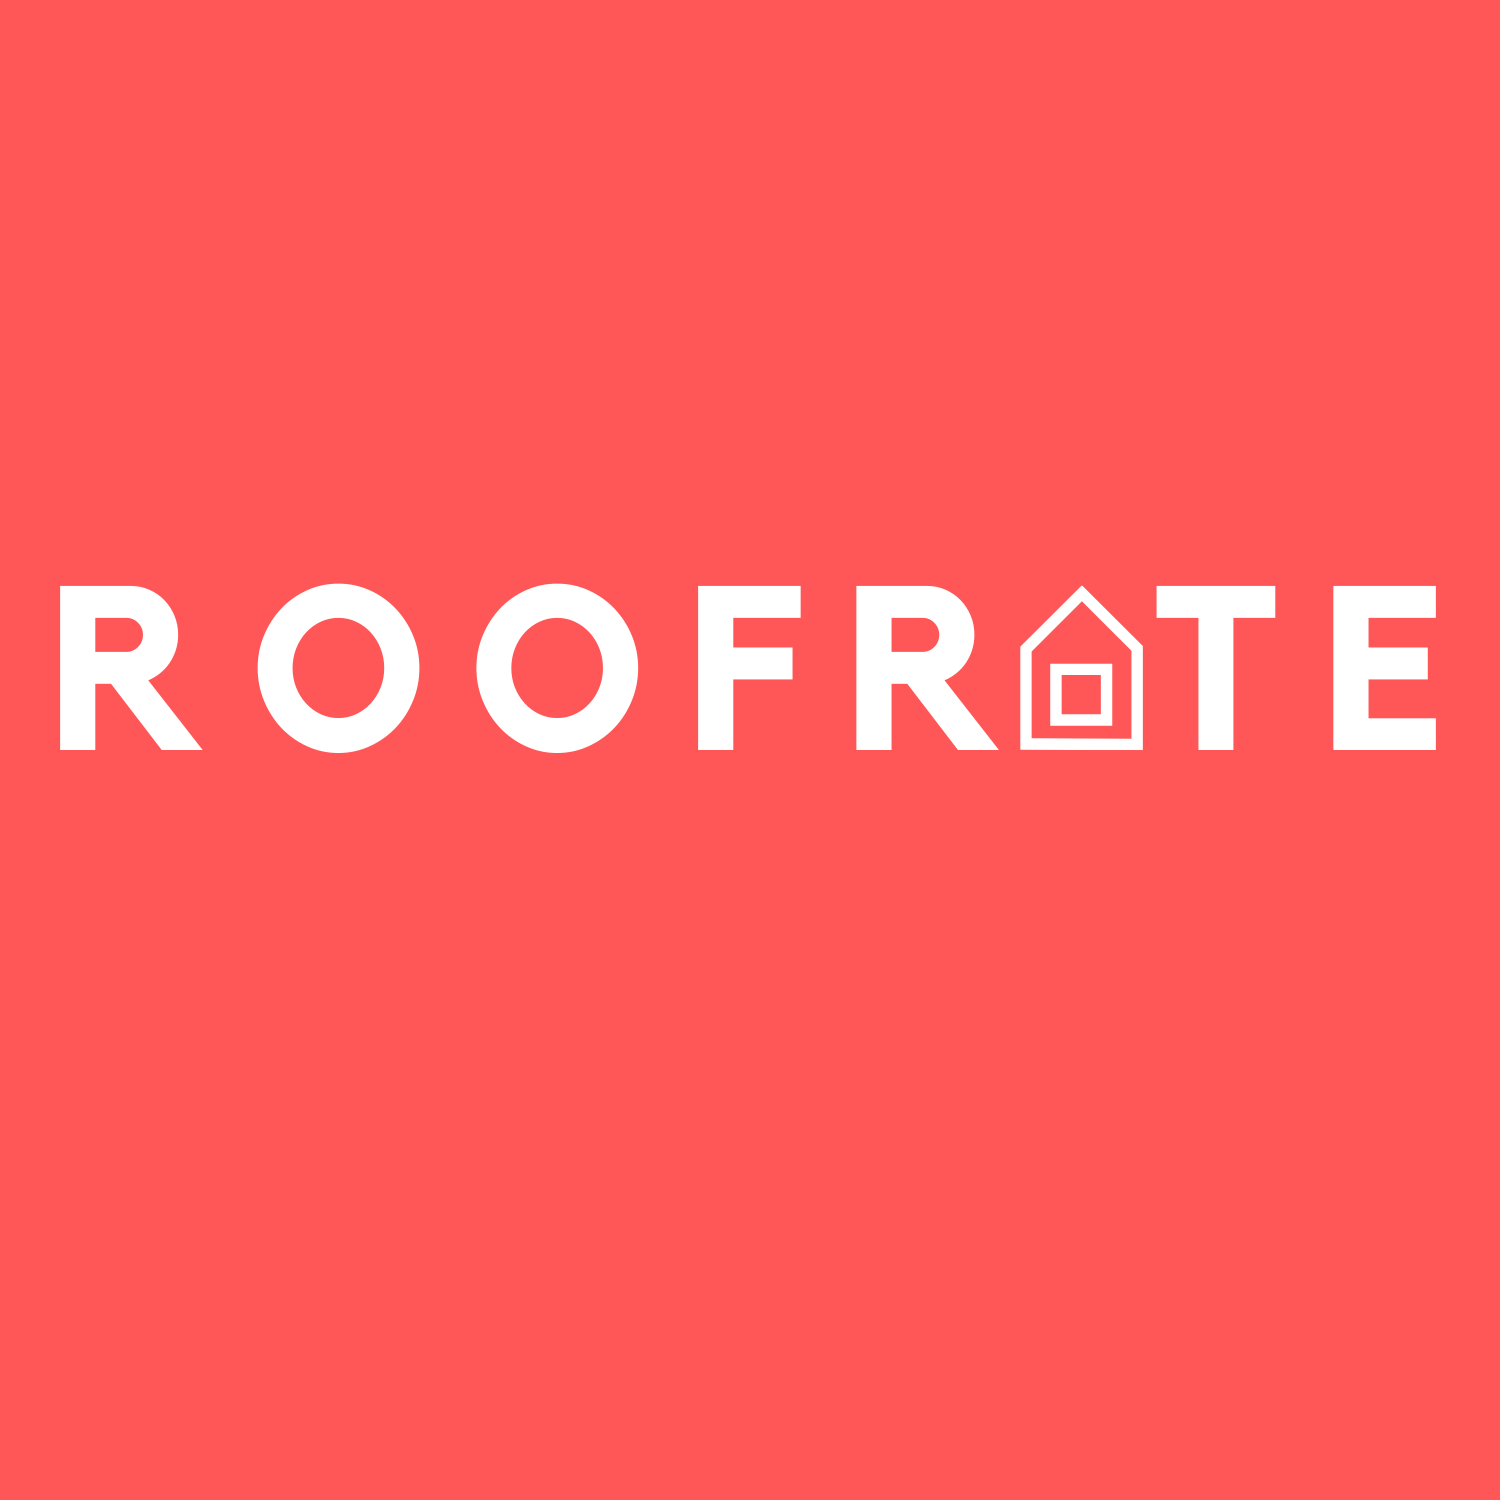 RoofRate logo